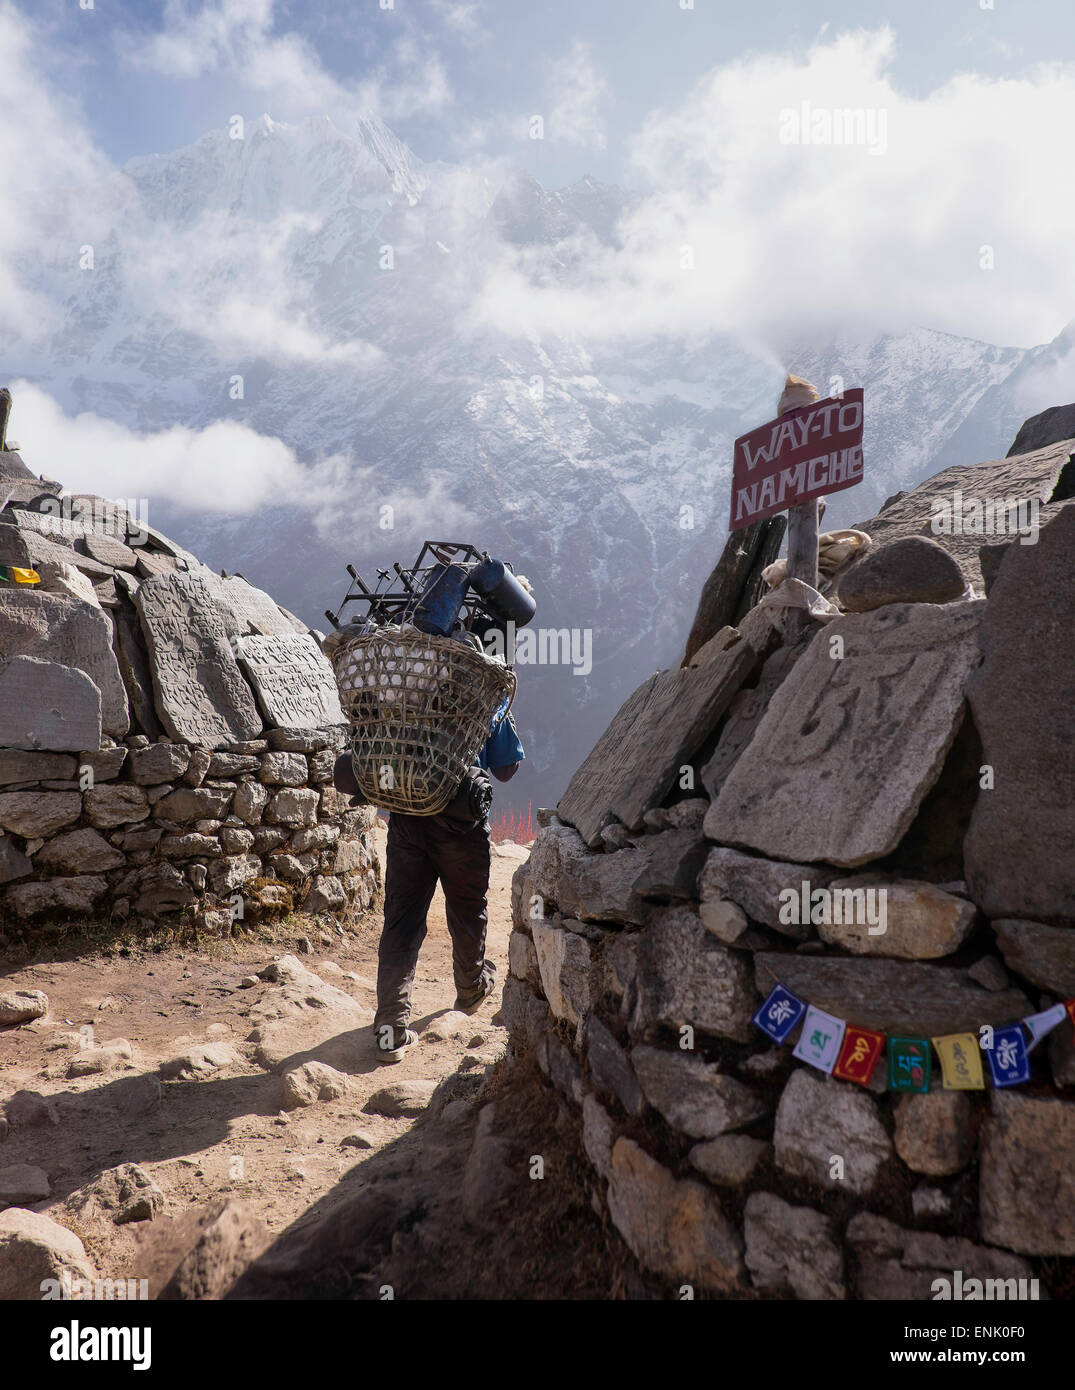 A sherpa leaving Tengboche on the way to Namche Bazaar, Himalayas, Nepal, Asia - Stock Image